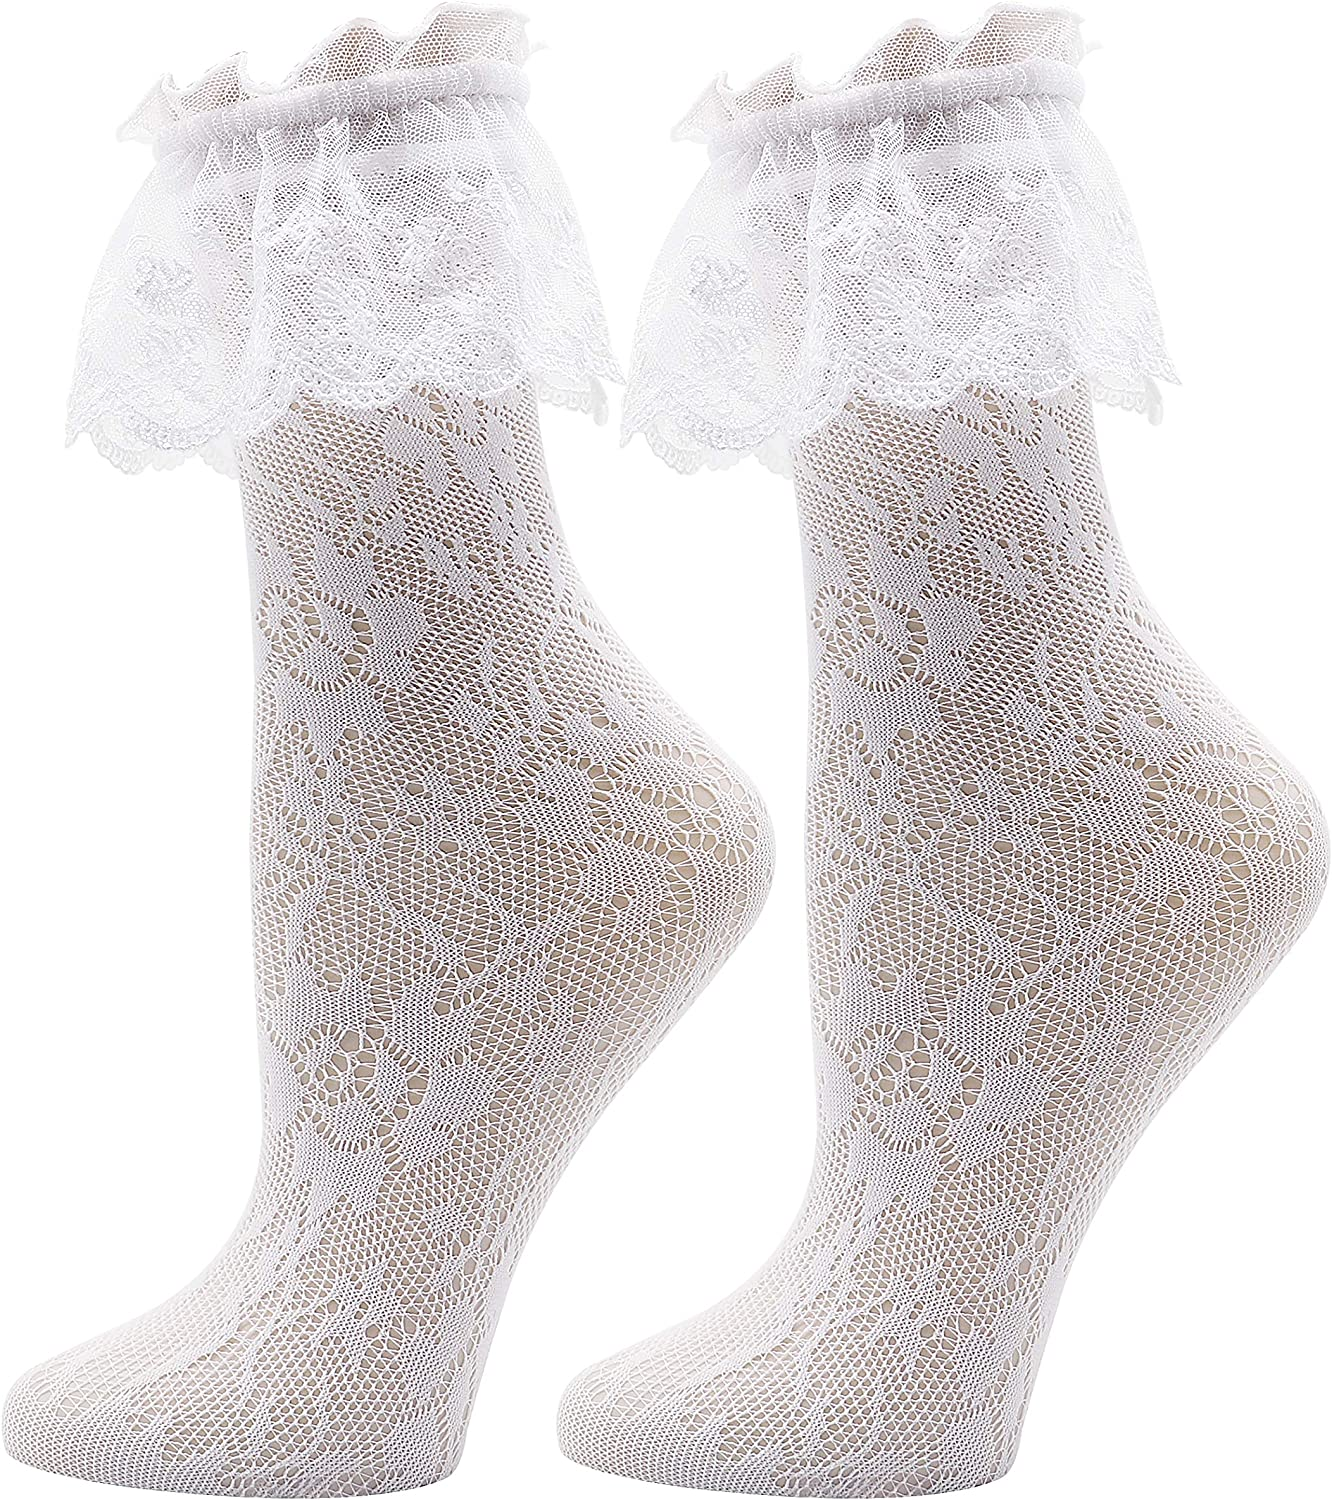 Lovful Women's Lace Anklet Sock with Ruffle, 2 Pairs Set